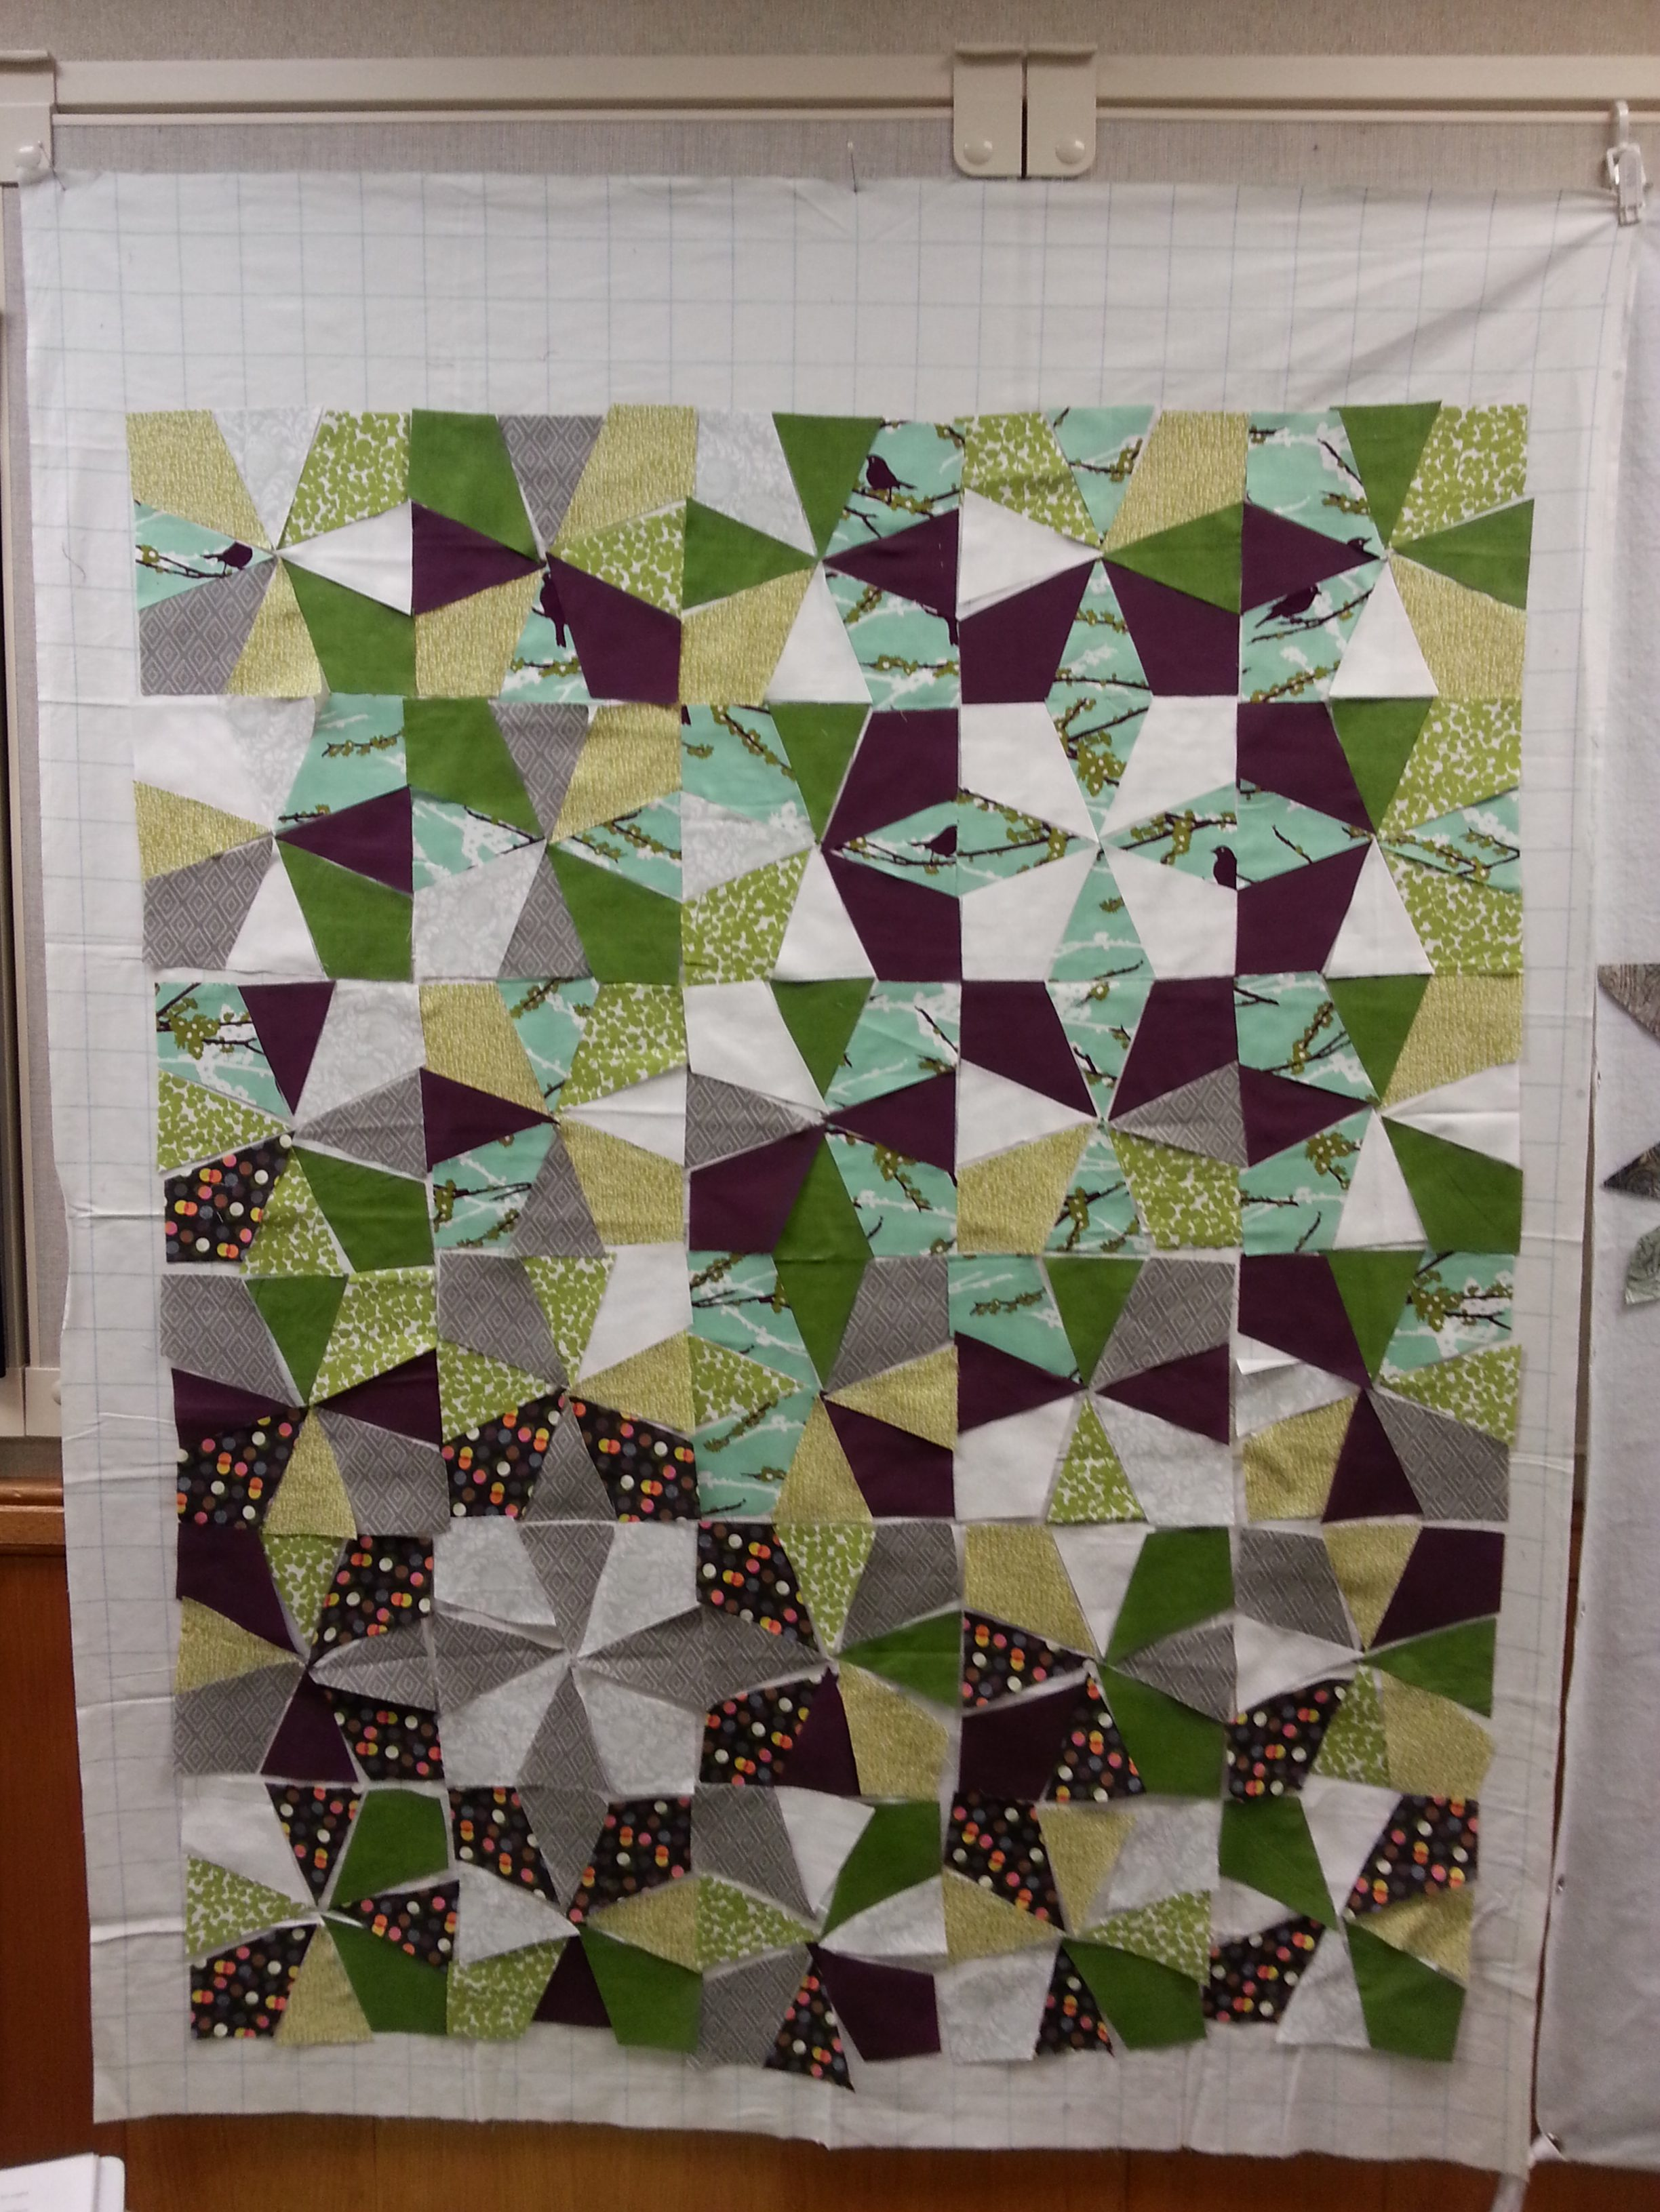 Dragonfly Quilts Blog Innovative Quilts, Traditional Roots Maggie Ball Page 4